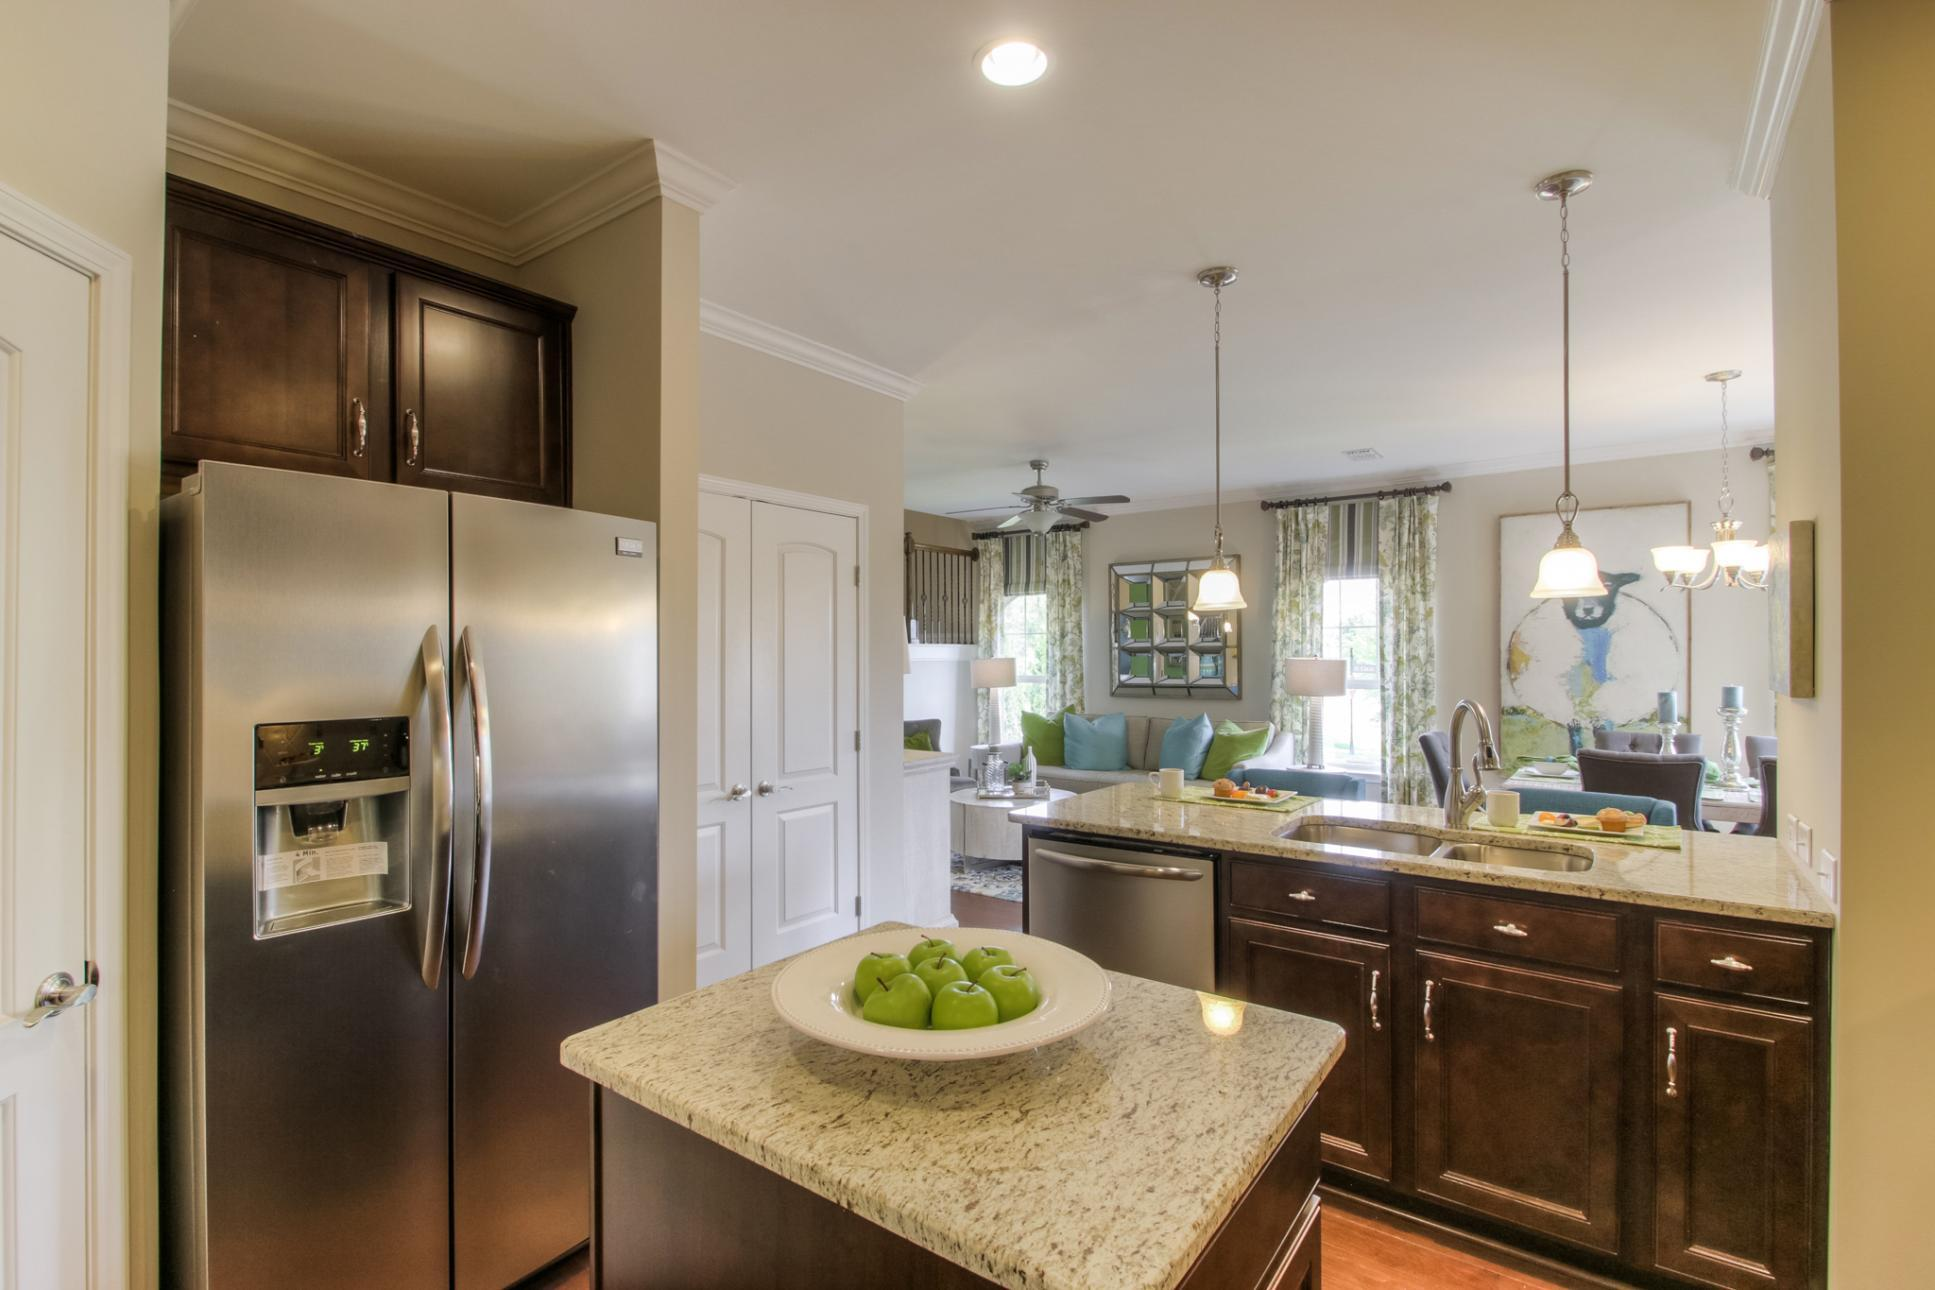 Kitchen featured in The Everleigh Courtyard Cottage By Goodall Homes in Nashville, TN